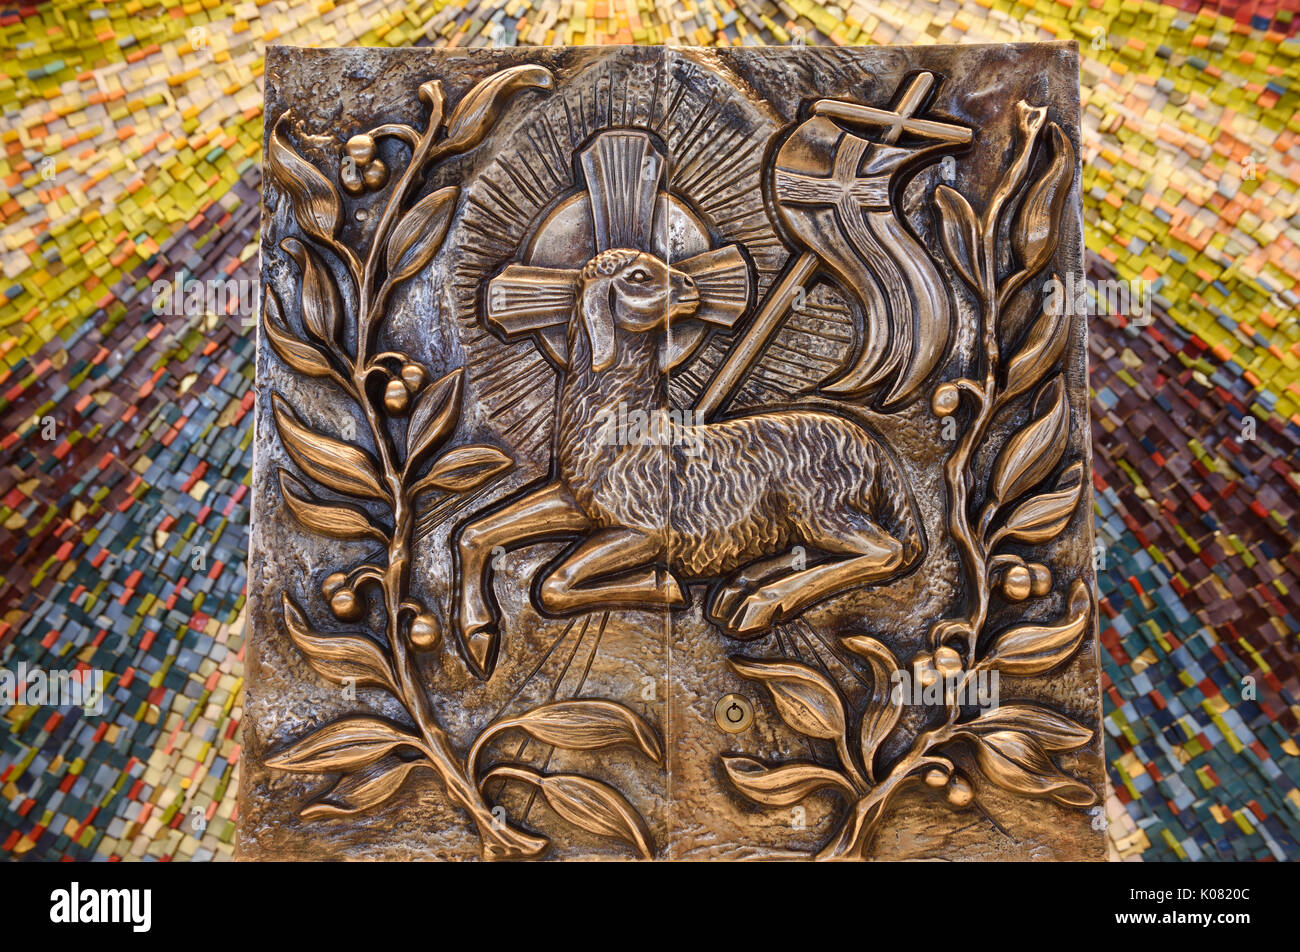 Bronze bas relief doors of Tabernacle in front of mosaic in Catholic church of Lamb of God Agnus Dei with vexillum cross flag and fruit vine - Stock Image